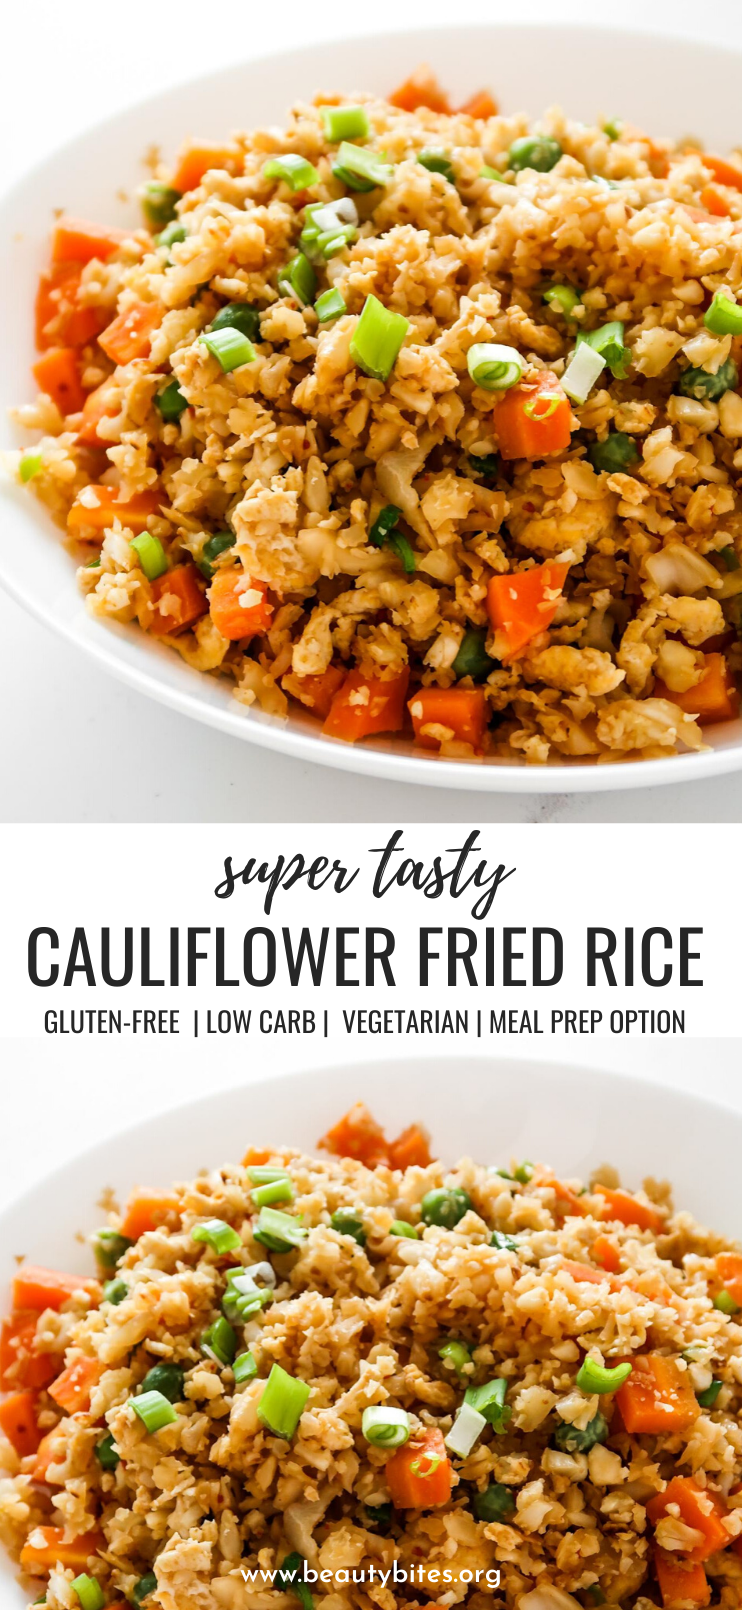 Easy cauliflower fried rice recipe! You'll need cauliflower, eggs, tamari or soy sauce, vegetables of choice and some oil to make this vegetarian low carb recipe from scratch! Only 30 minutes and you'll have a delicious, filling and healthy dinner on the table! This clean eating recipe is gluten-free, dairy-free, vegetarian and low carb and comes with an easy meal prep option. #healthy #recipe #easy #dinner #easydinner #cauliflower #friedrice #lowcarb #lowcarbdinner